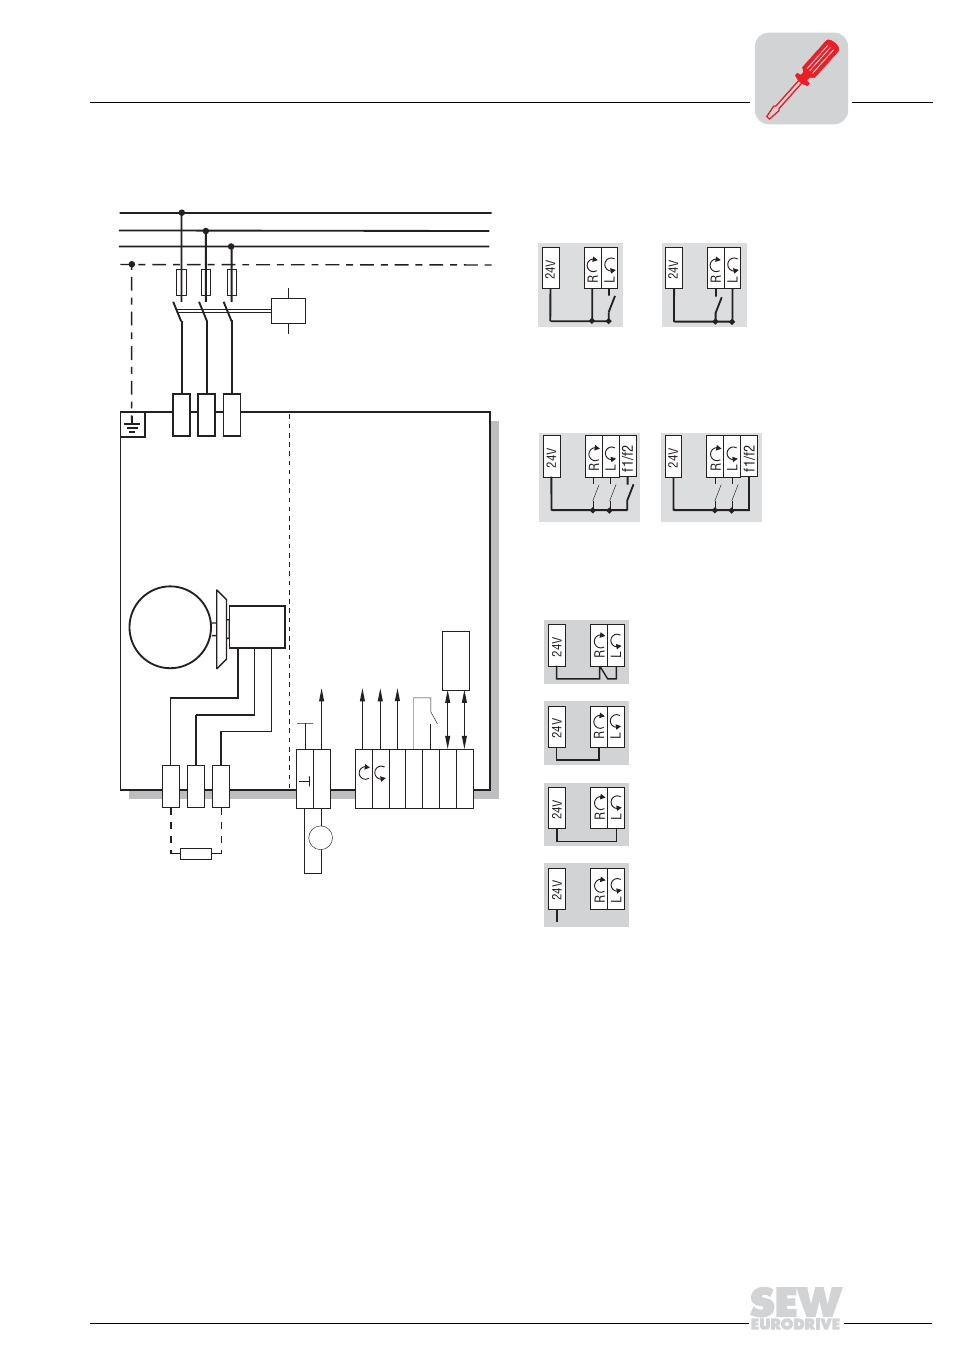 metalfab sew eurodrive movimot mmc page25 sew movimot wiring diagram sew eurodrive wiring diagram \u2022 edmiracle co kubota g1800 wiring diagram at readyjetset.co